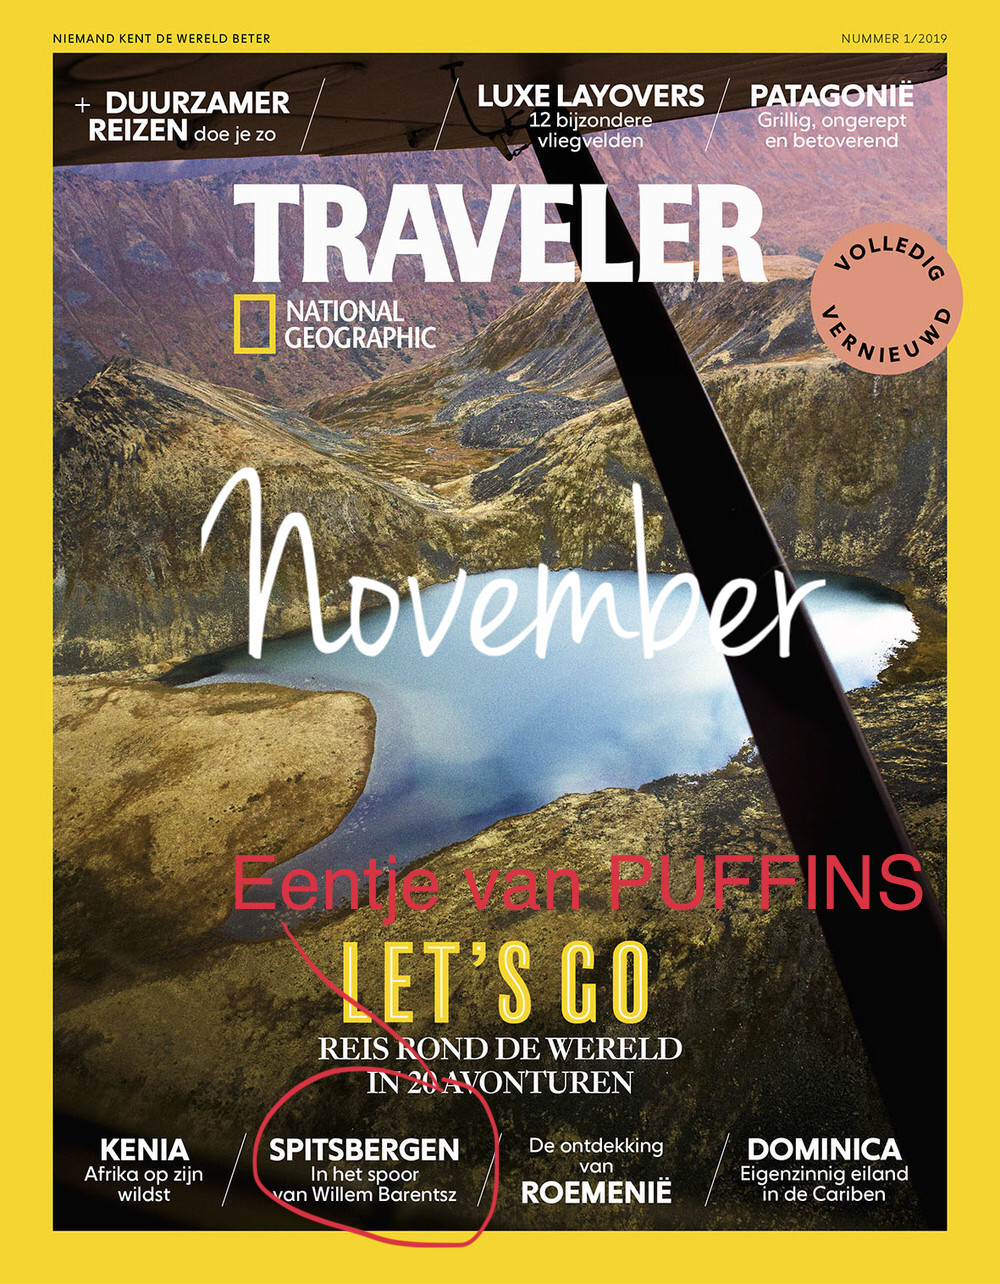 In November, journalist Frits Meyst let us know we made it to  National Geographic Traveler  with our story from Spitsbergen. This is our fourth major publication. Not too bad for a young puffling!